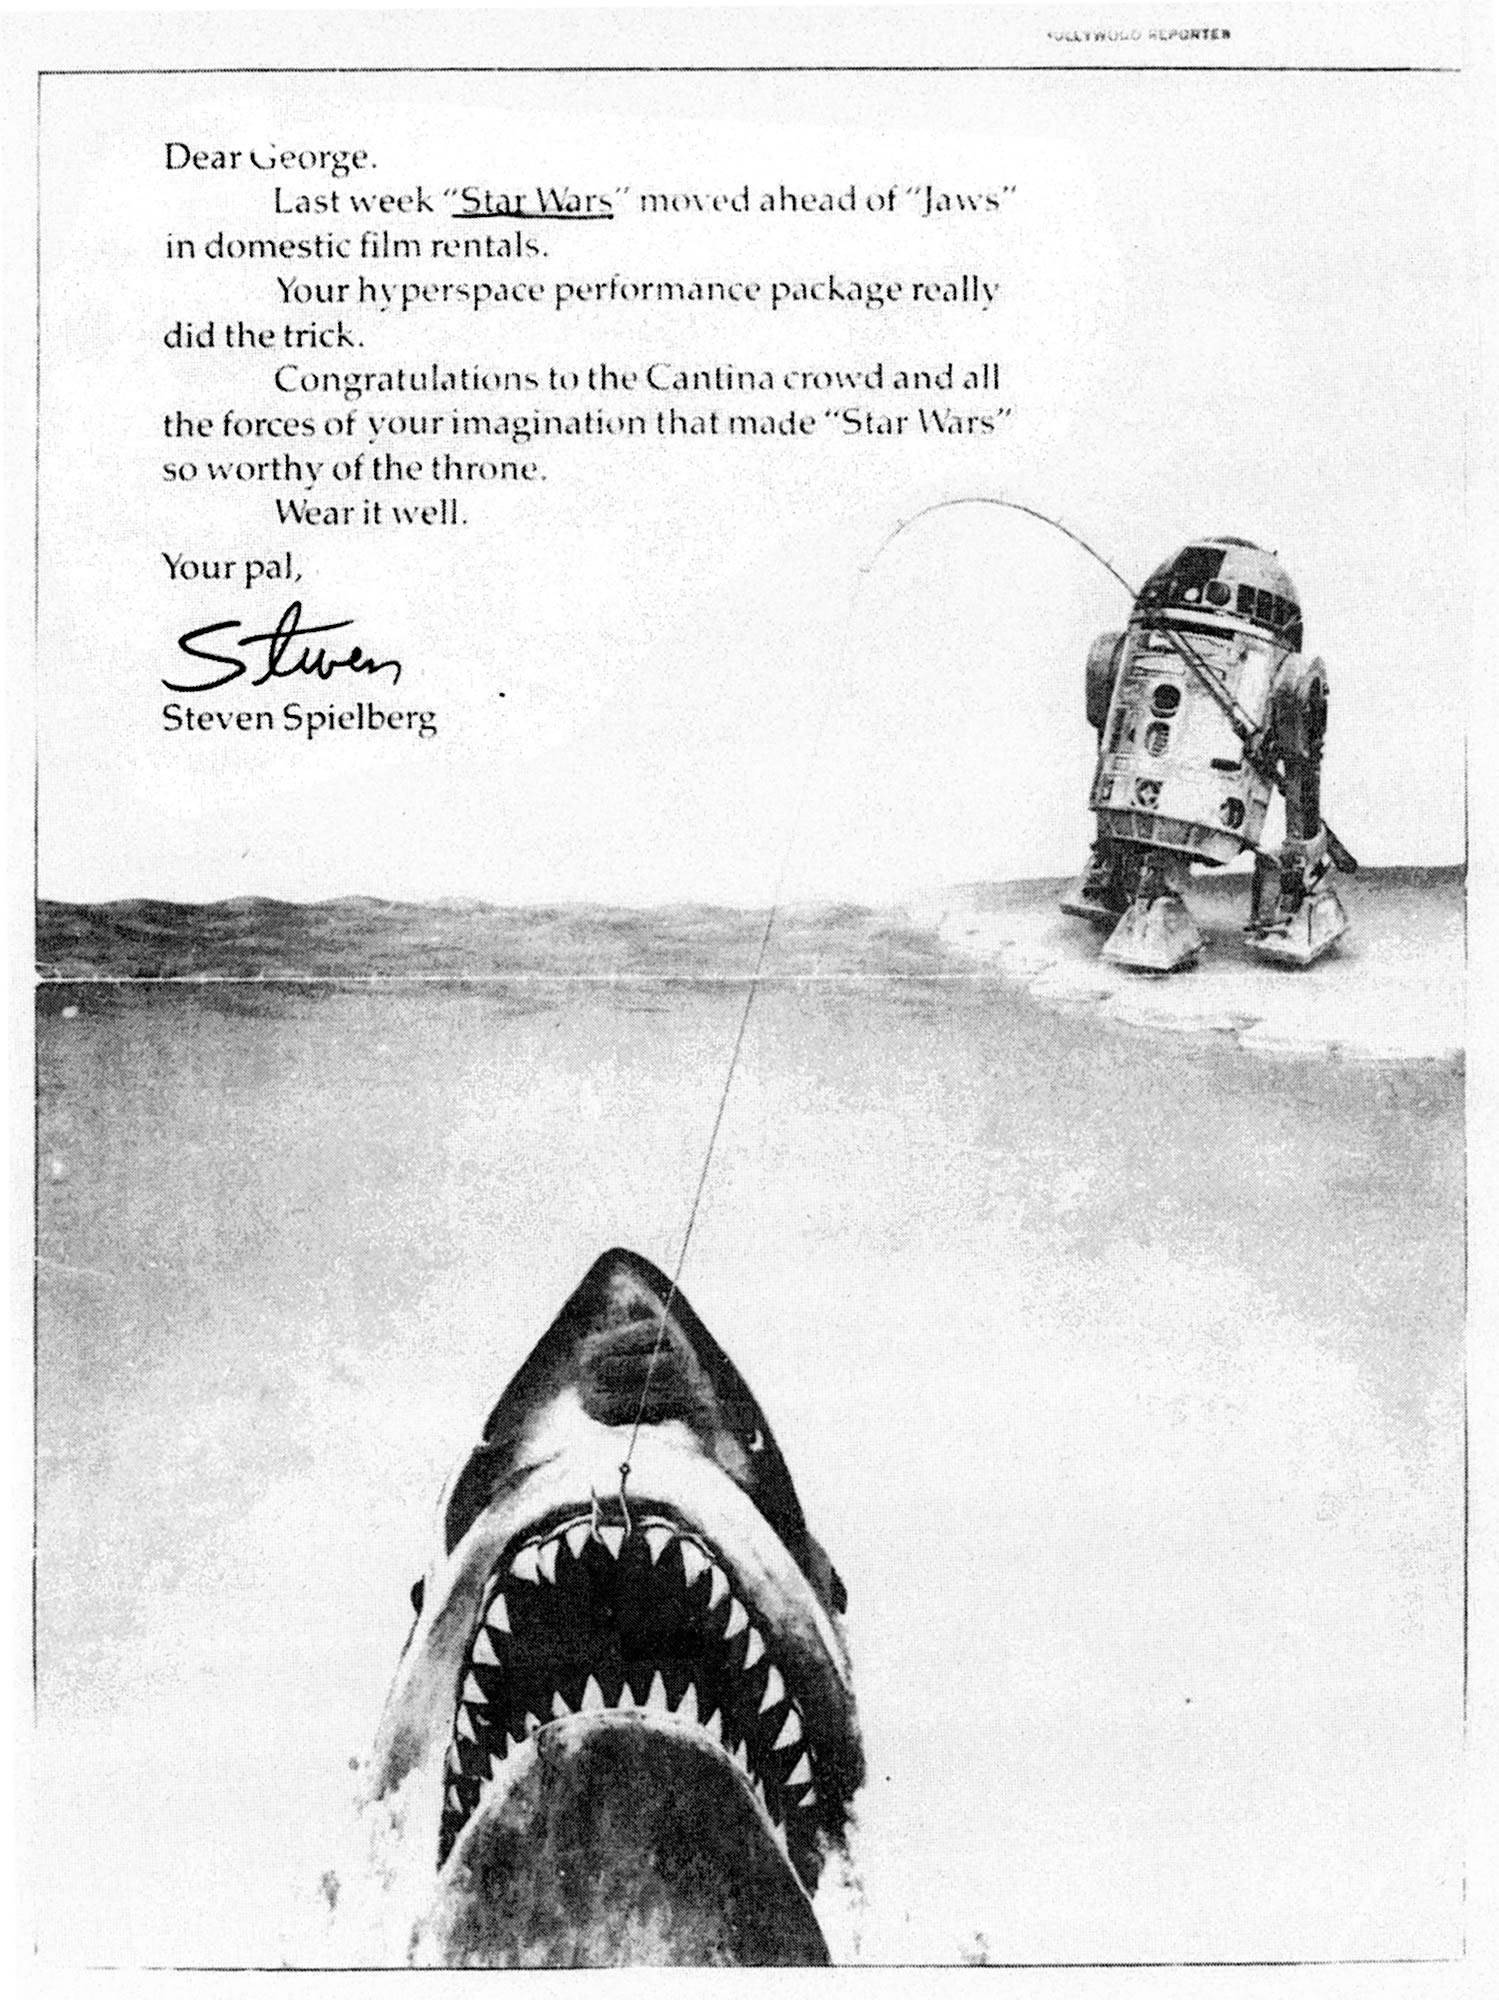 Star Wars Overtakes Jaws